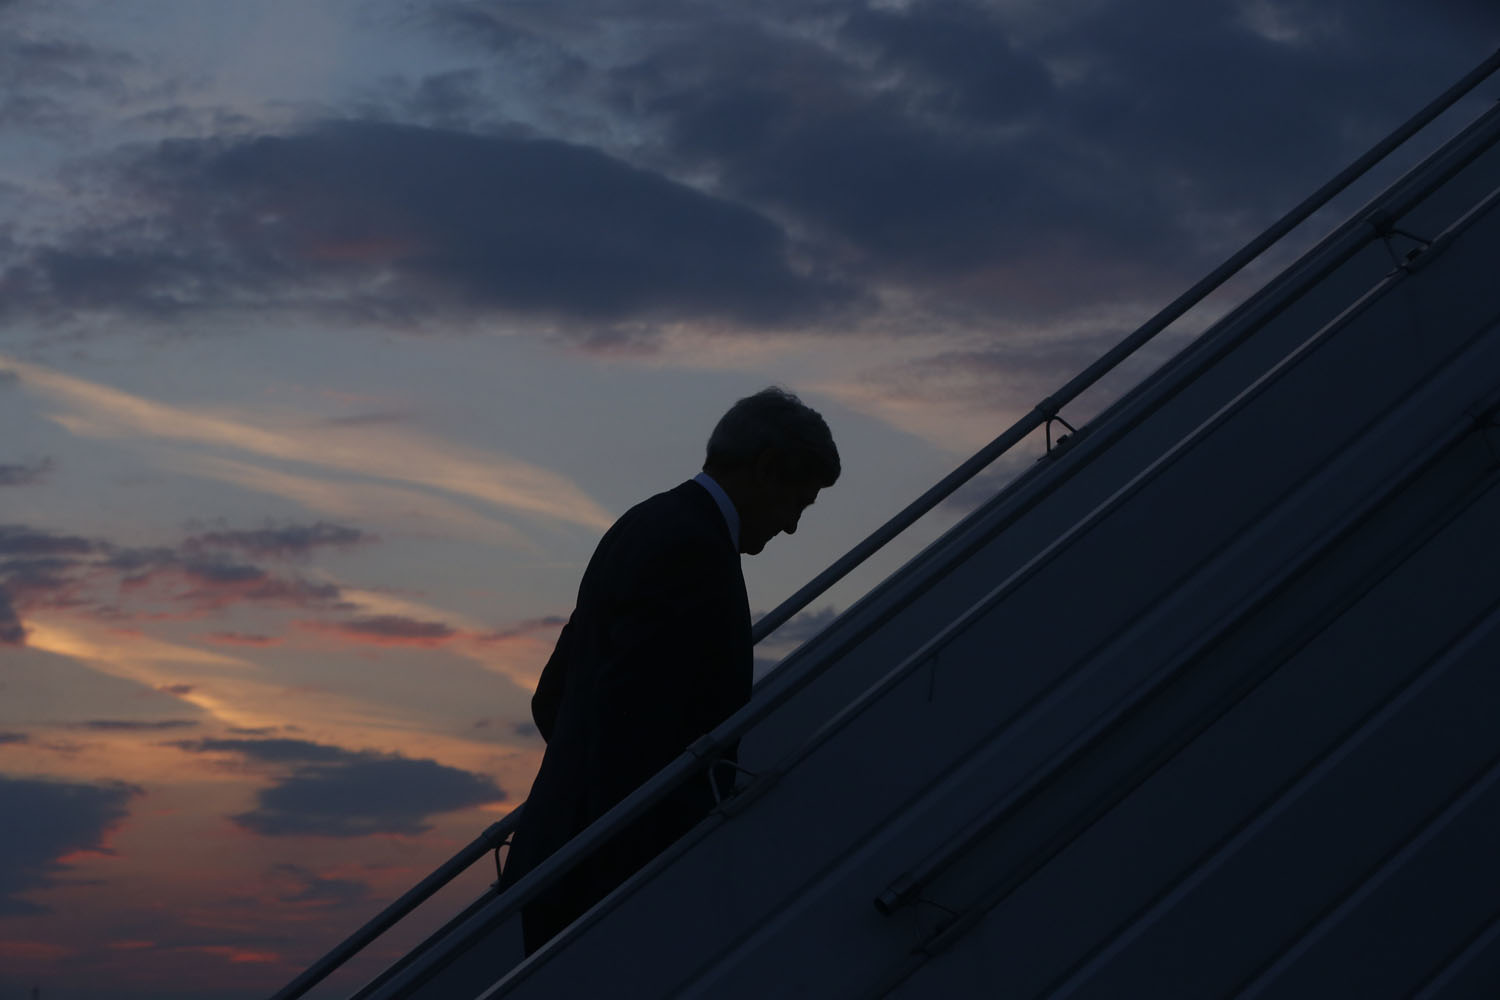 Jul. 26, 2014. U.S. Secretary of State John Kerry boards his plane in Paris, as he returns to Washington, following efforts to reach a longer truce between Israel and Hamas in Gaza.